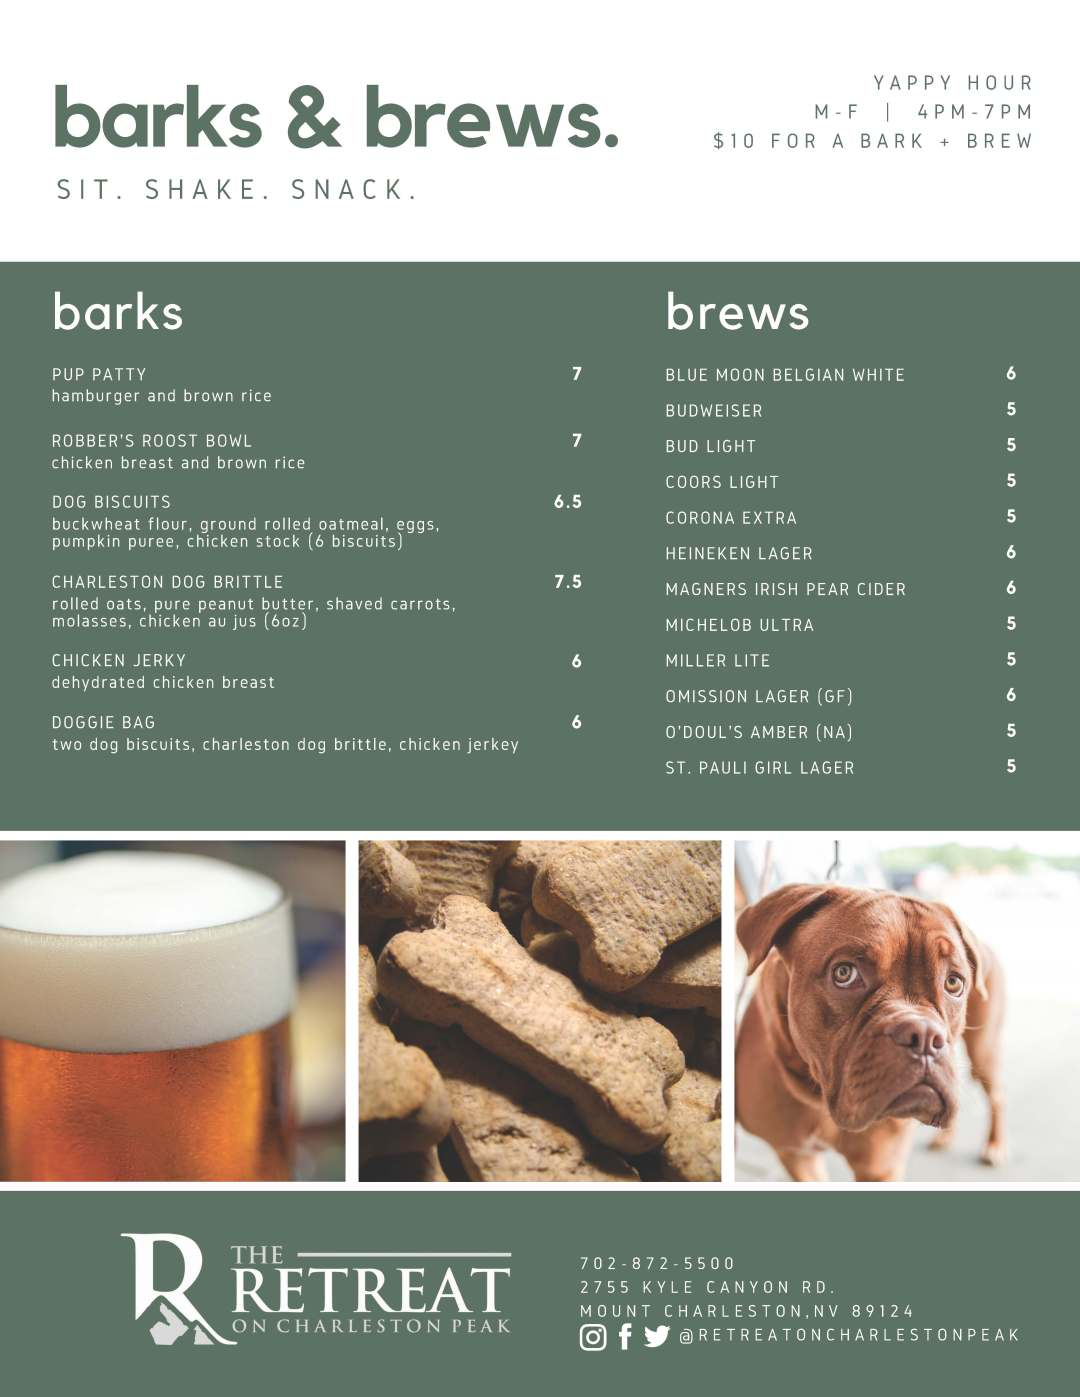 Barks & Brews  – The Retreat on Charleston Peak